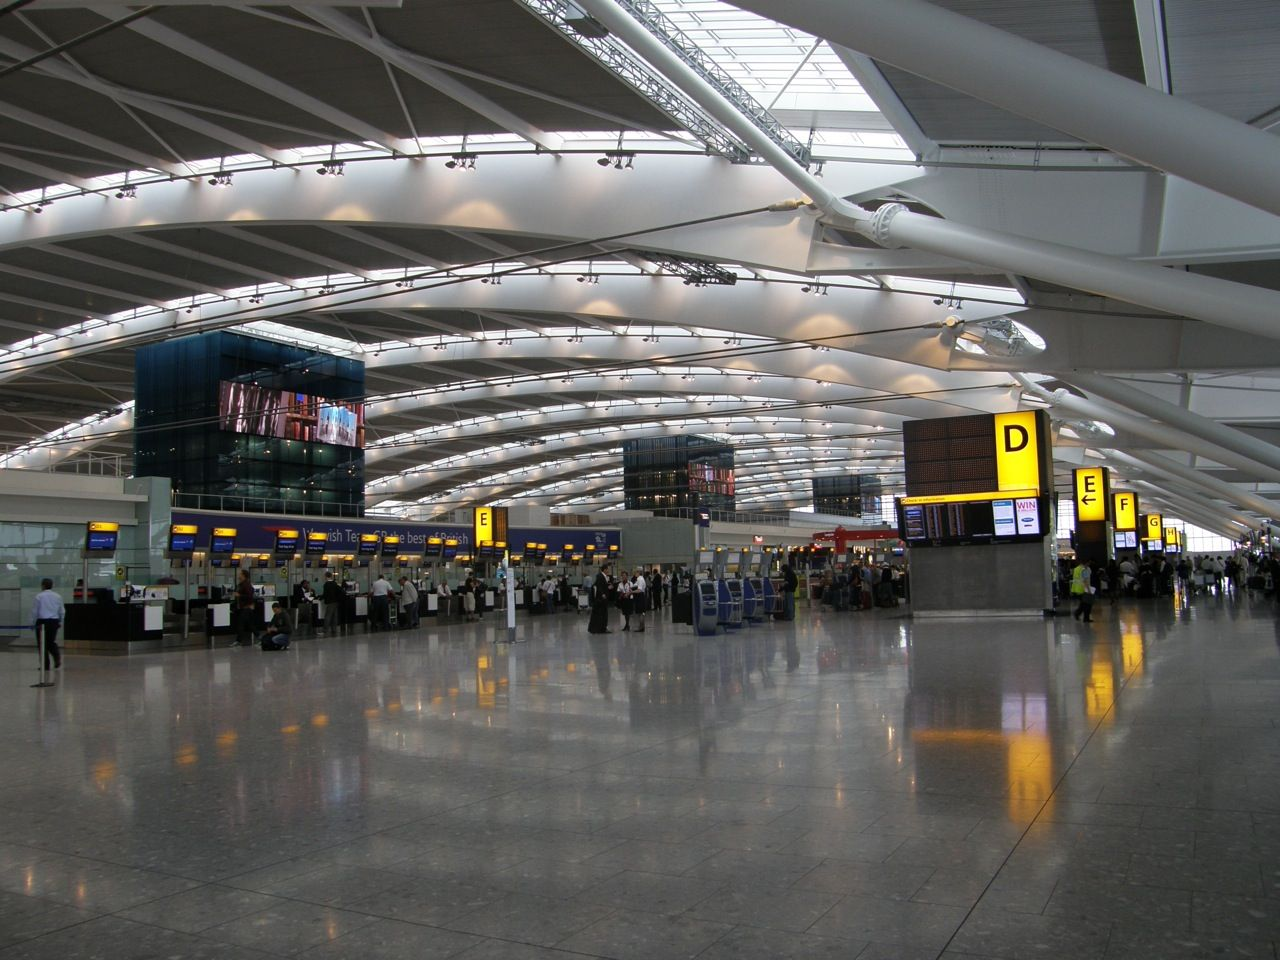 London Heathrow Airport Airports Pinterest Bucharest City And